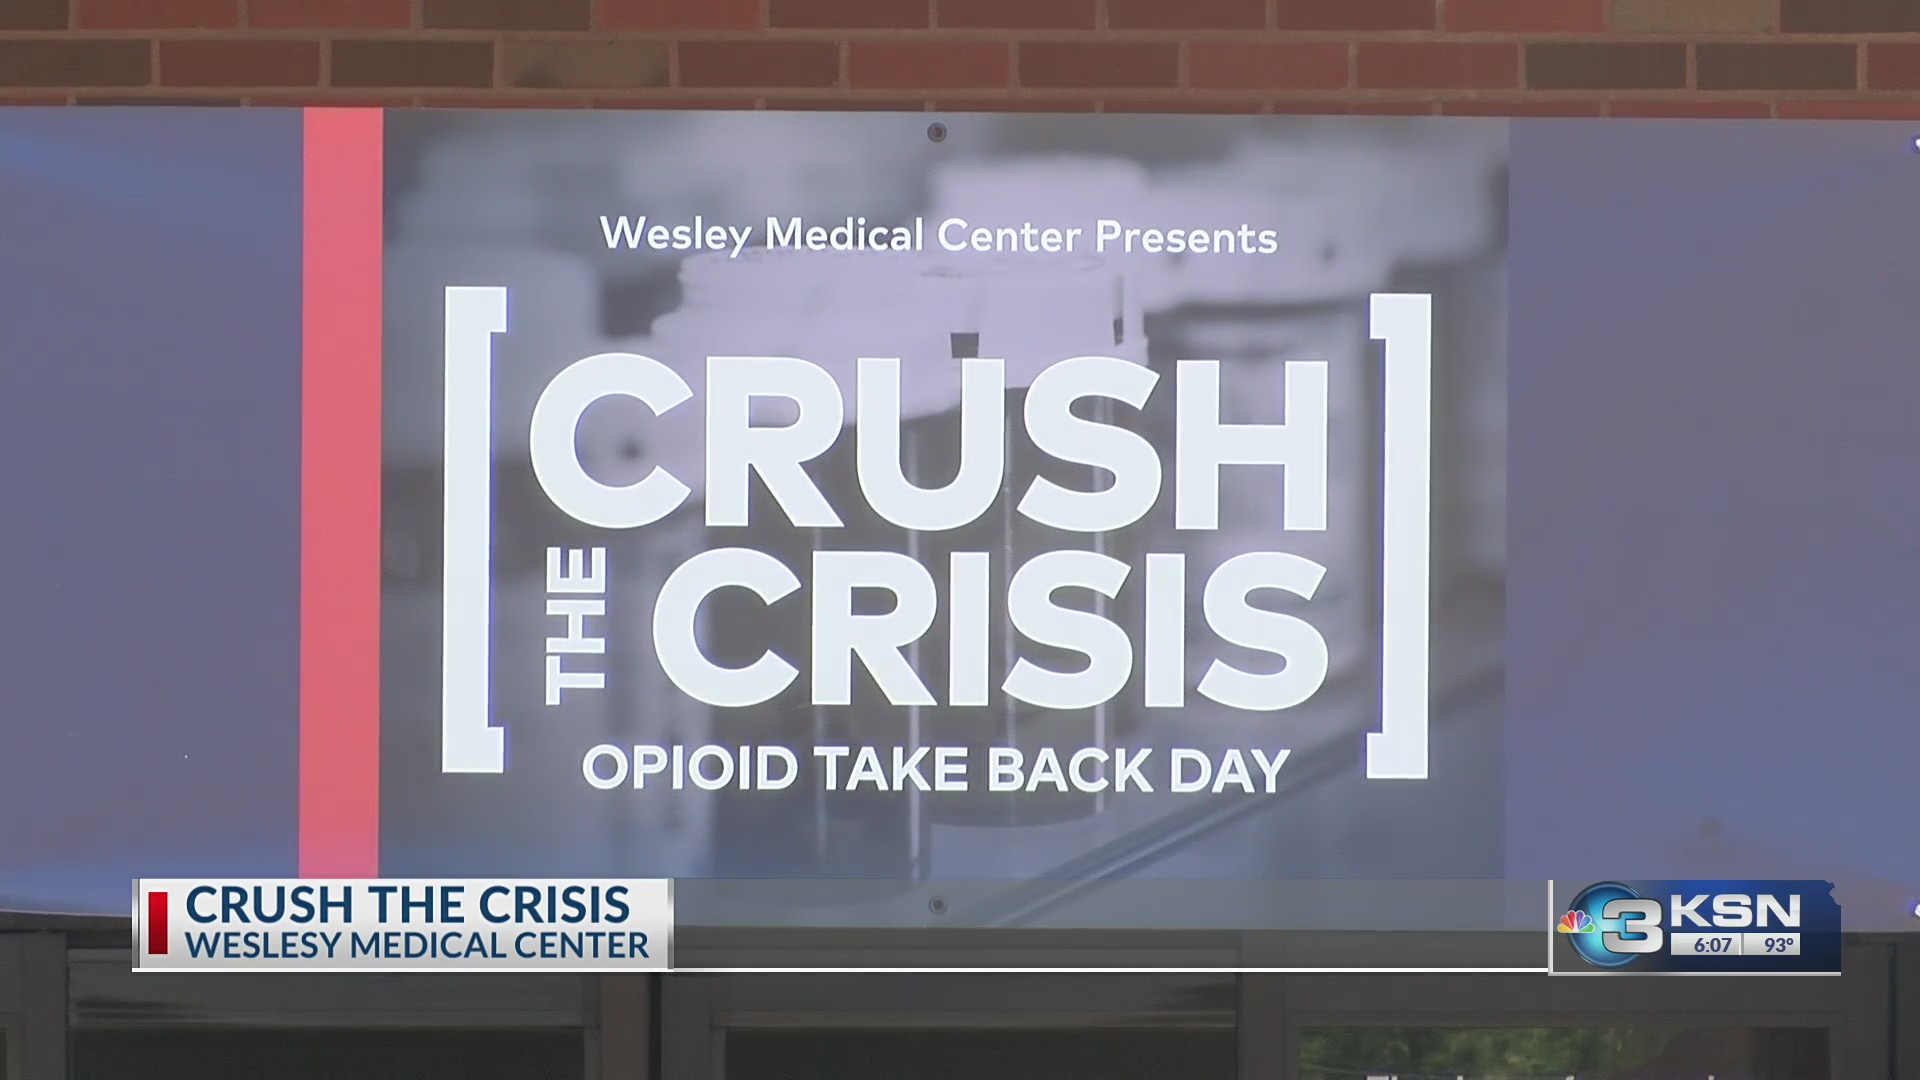 Wesley Medical Center joins the fight in opioid addiction